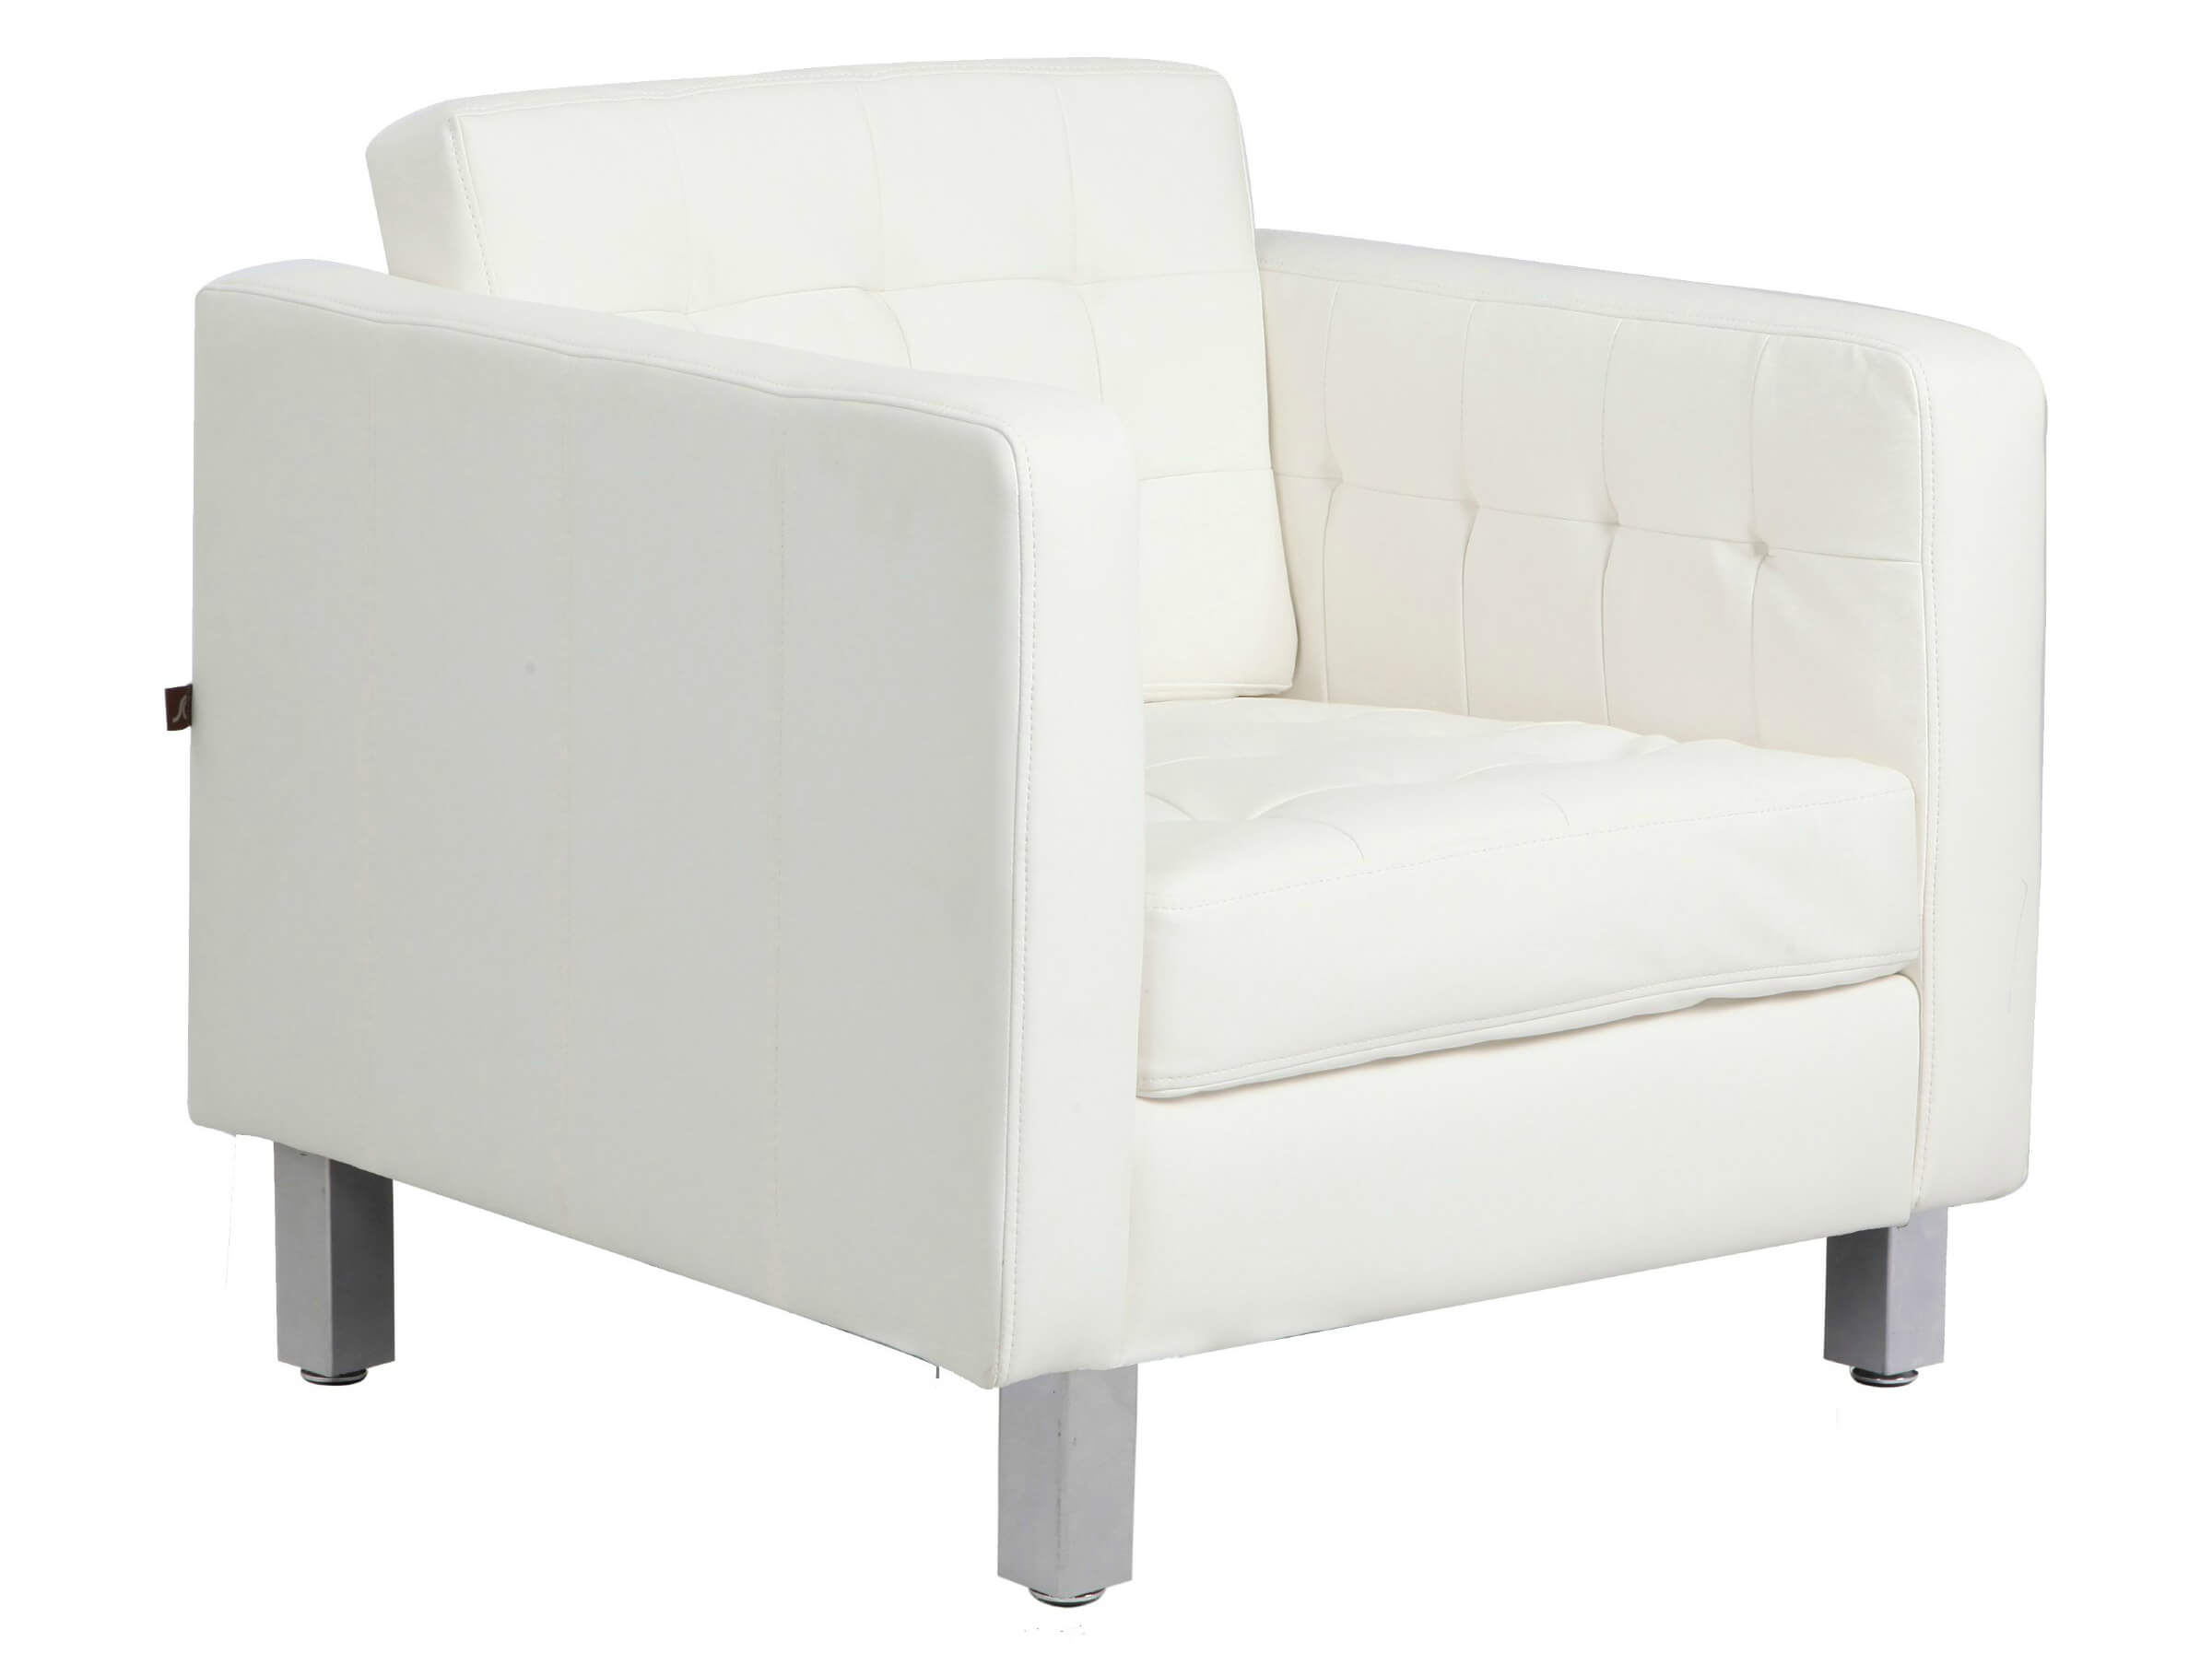 Buttoned, bonded white leather design of this Rissanti accent chair holds  wide, comfortable cushion .